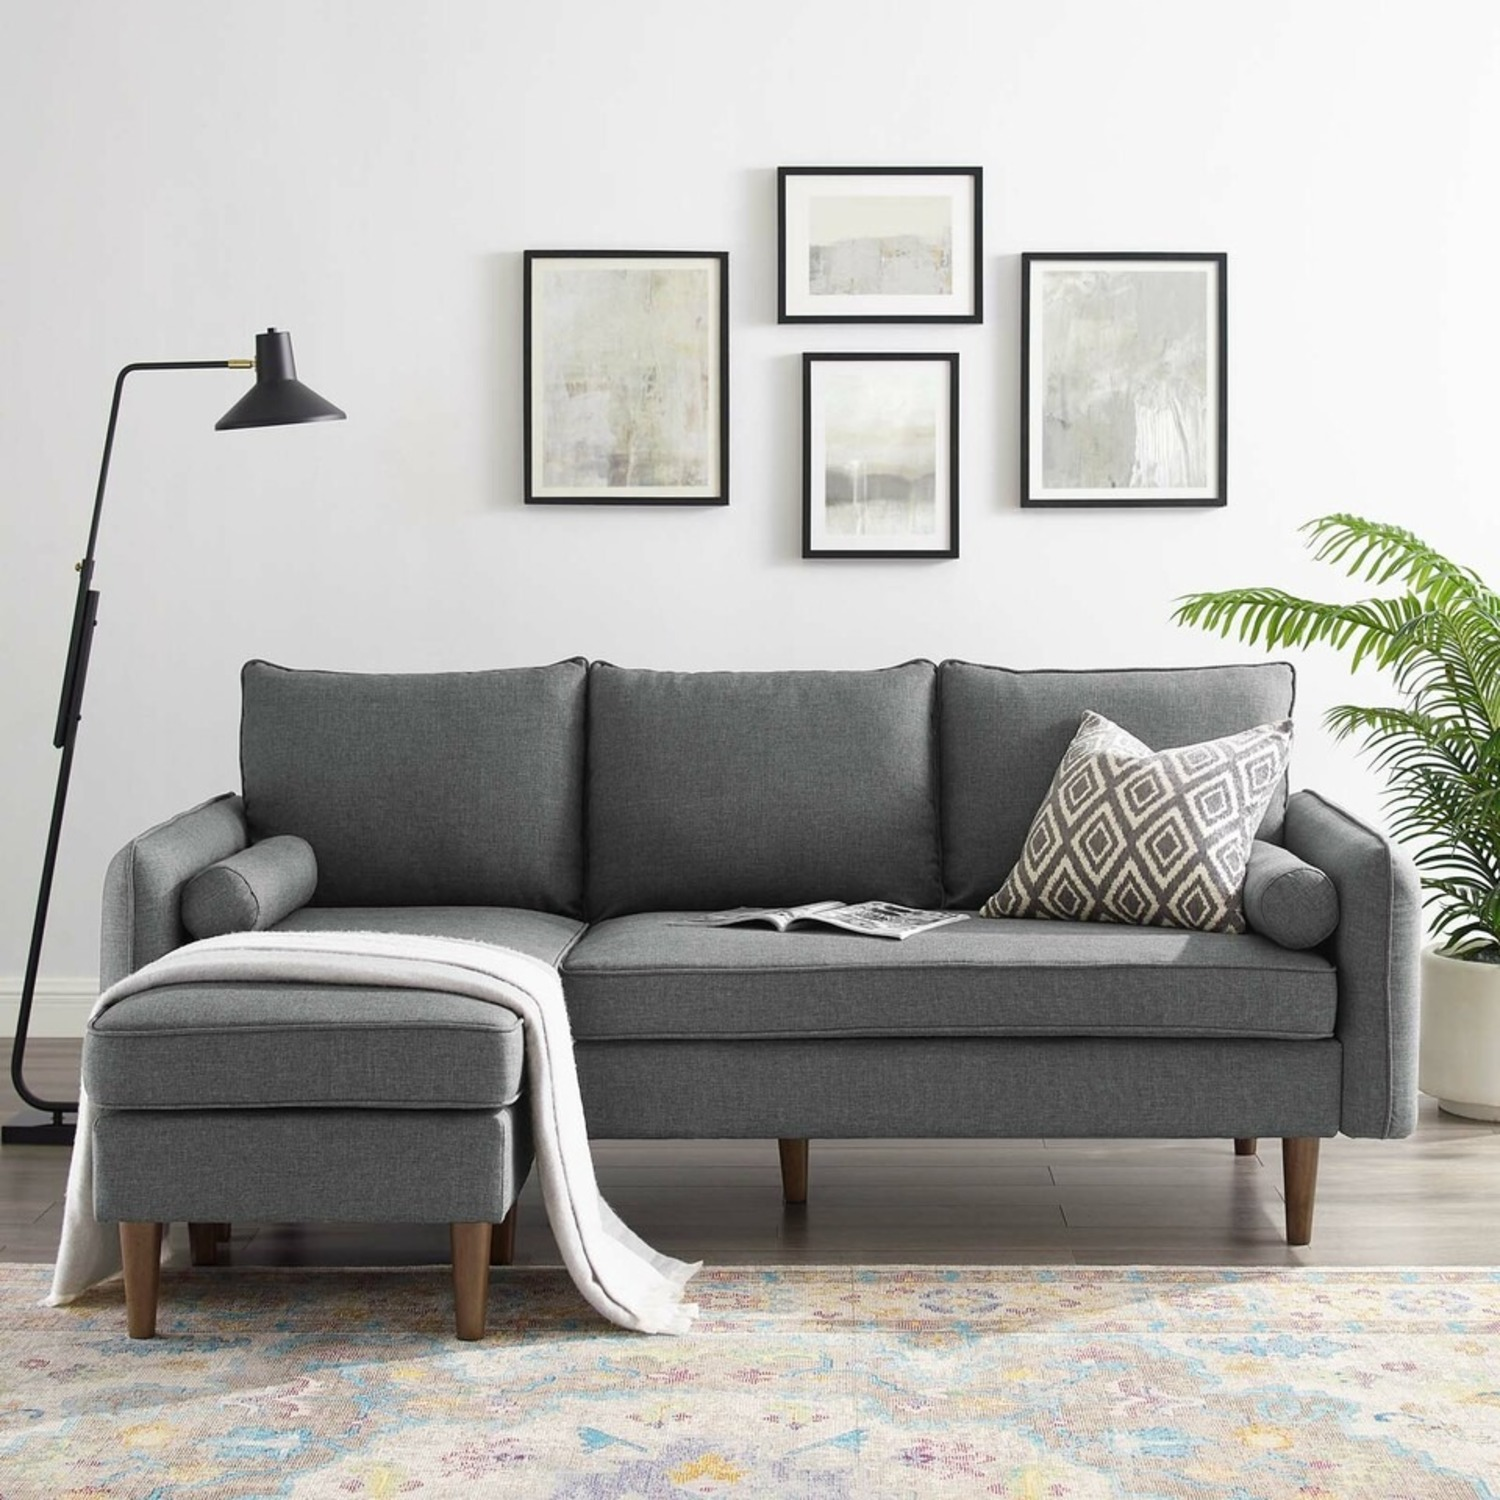 2-Piece Sectional Sofa In Gray Upholstery Finish - image-8